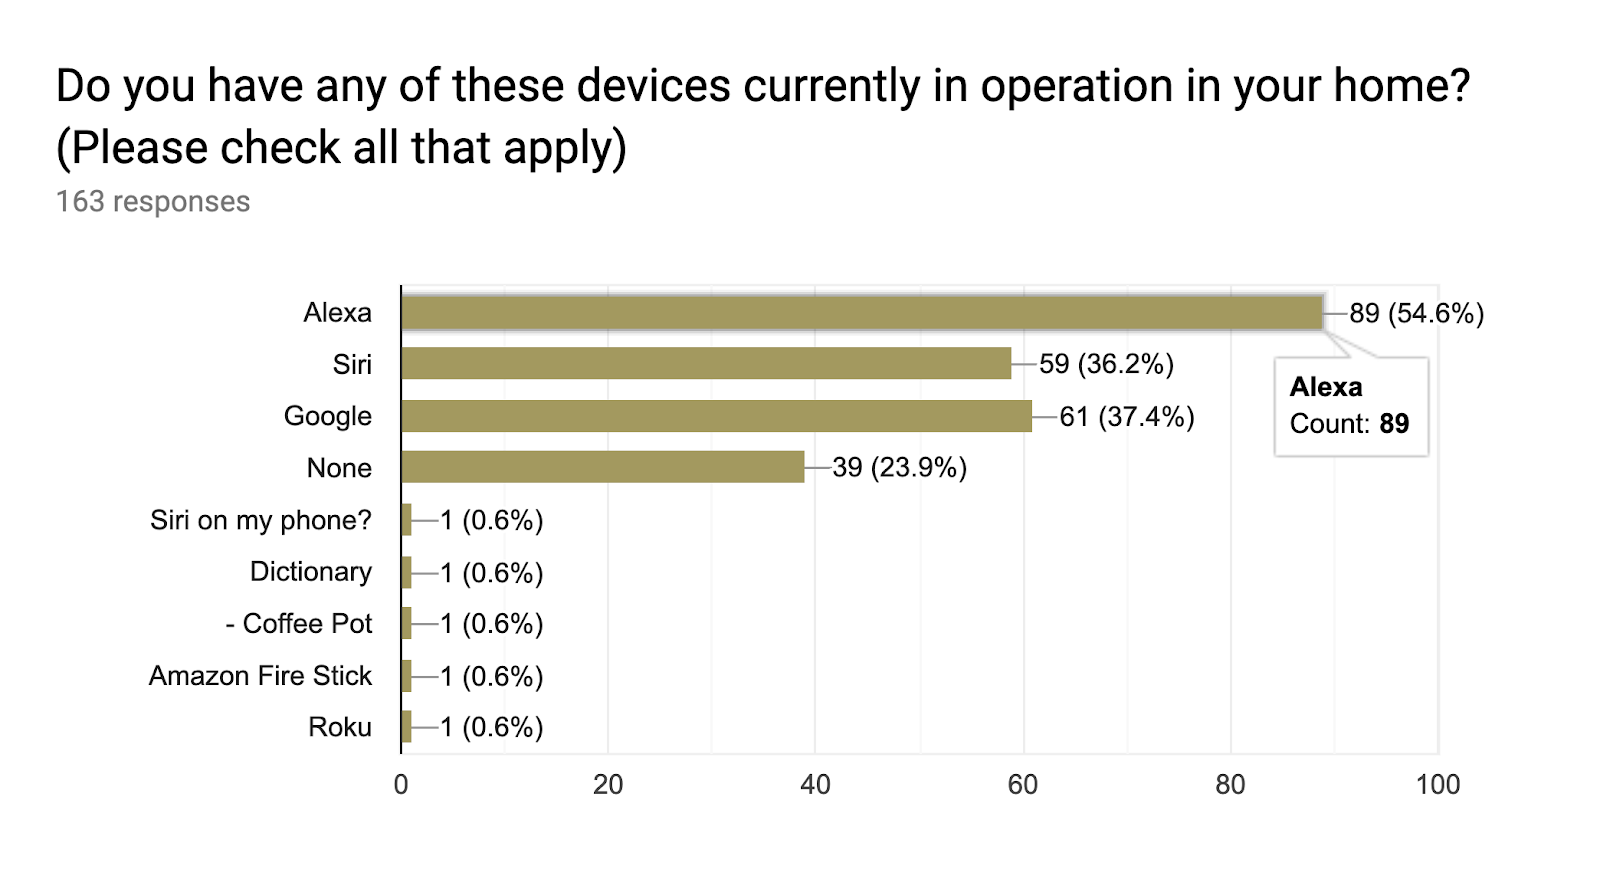 Forms response chart. Question title: Do you have any of these devices currently in operation in your home?  (Please check all that apply). Number of responses: 163 responses.